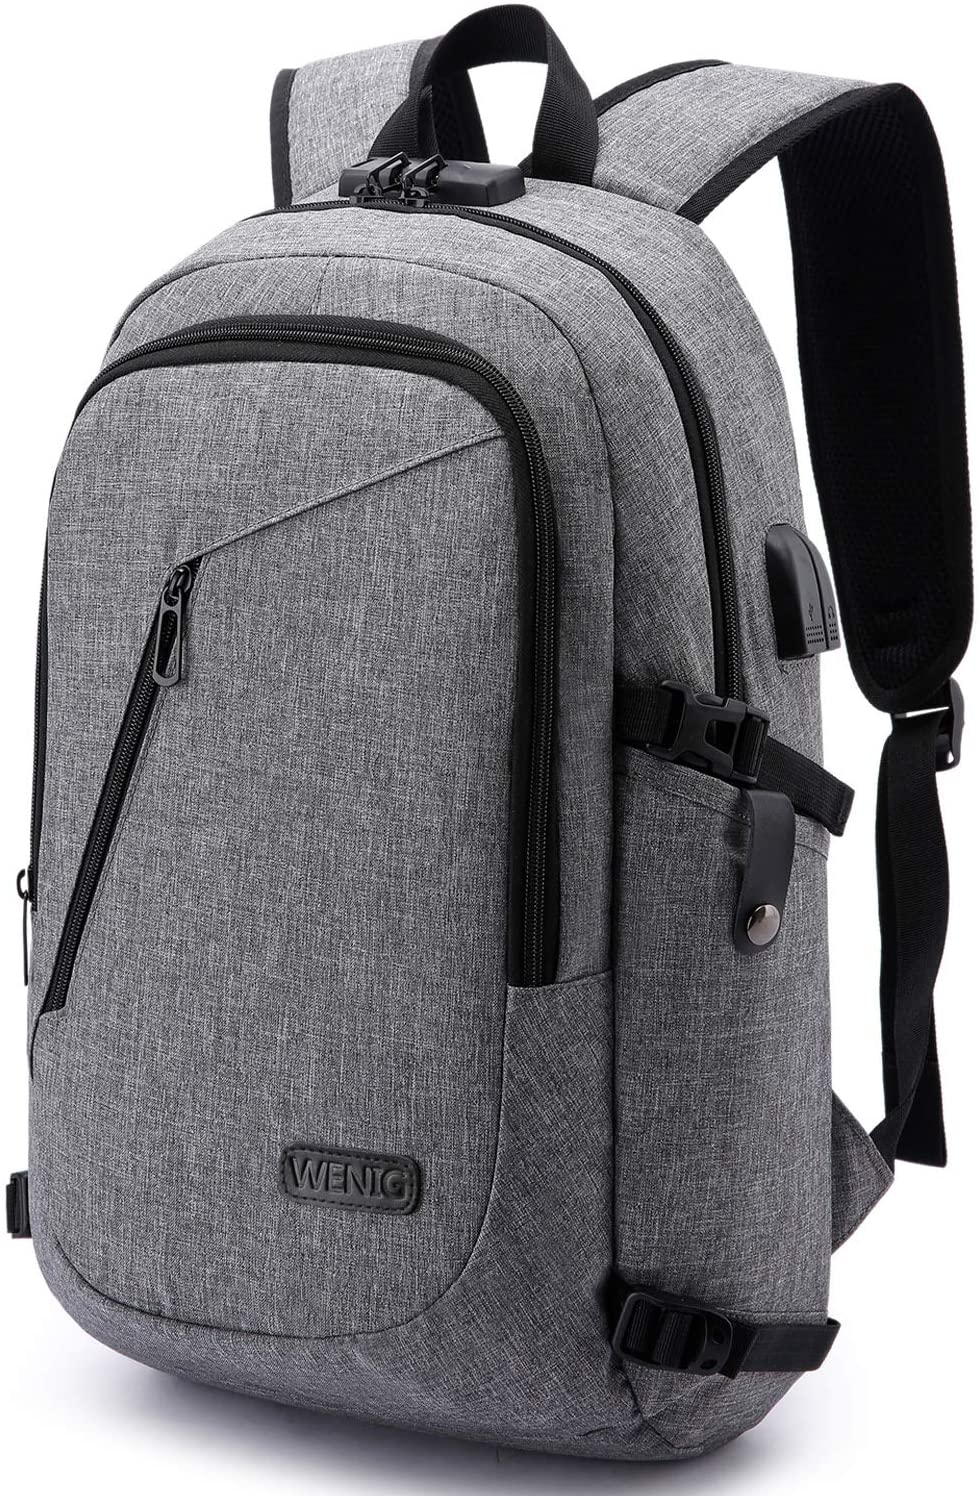 Laptop Backpack,Business Travel Anti Theft Backpack for Men Women with USB Charging Port,Slim Durable Water Resistant College School Bookbag Computer Backpack Fits 15.6 Inch Laptop Notebook,Grey